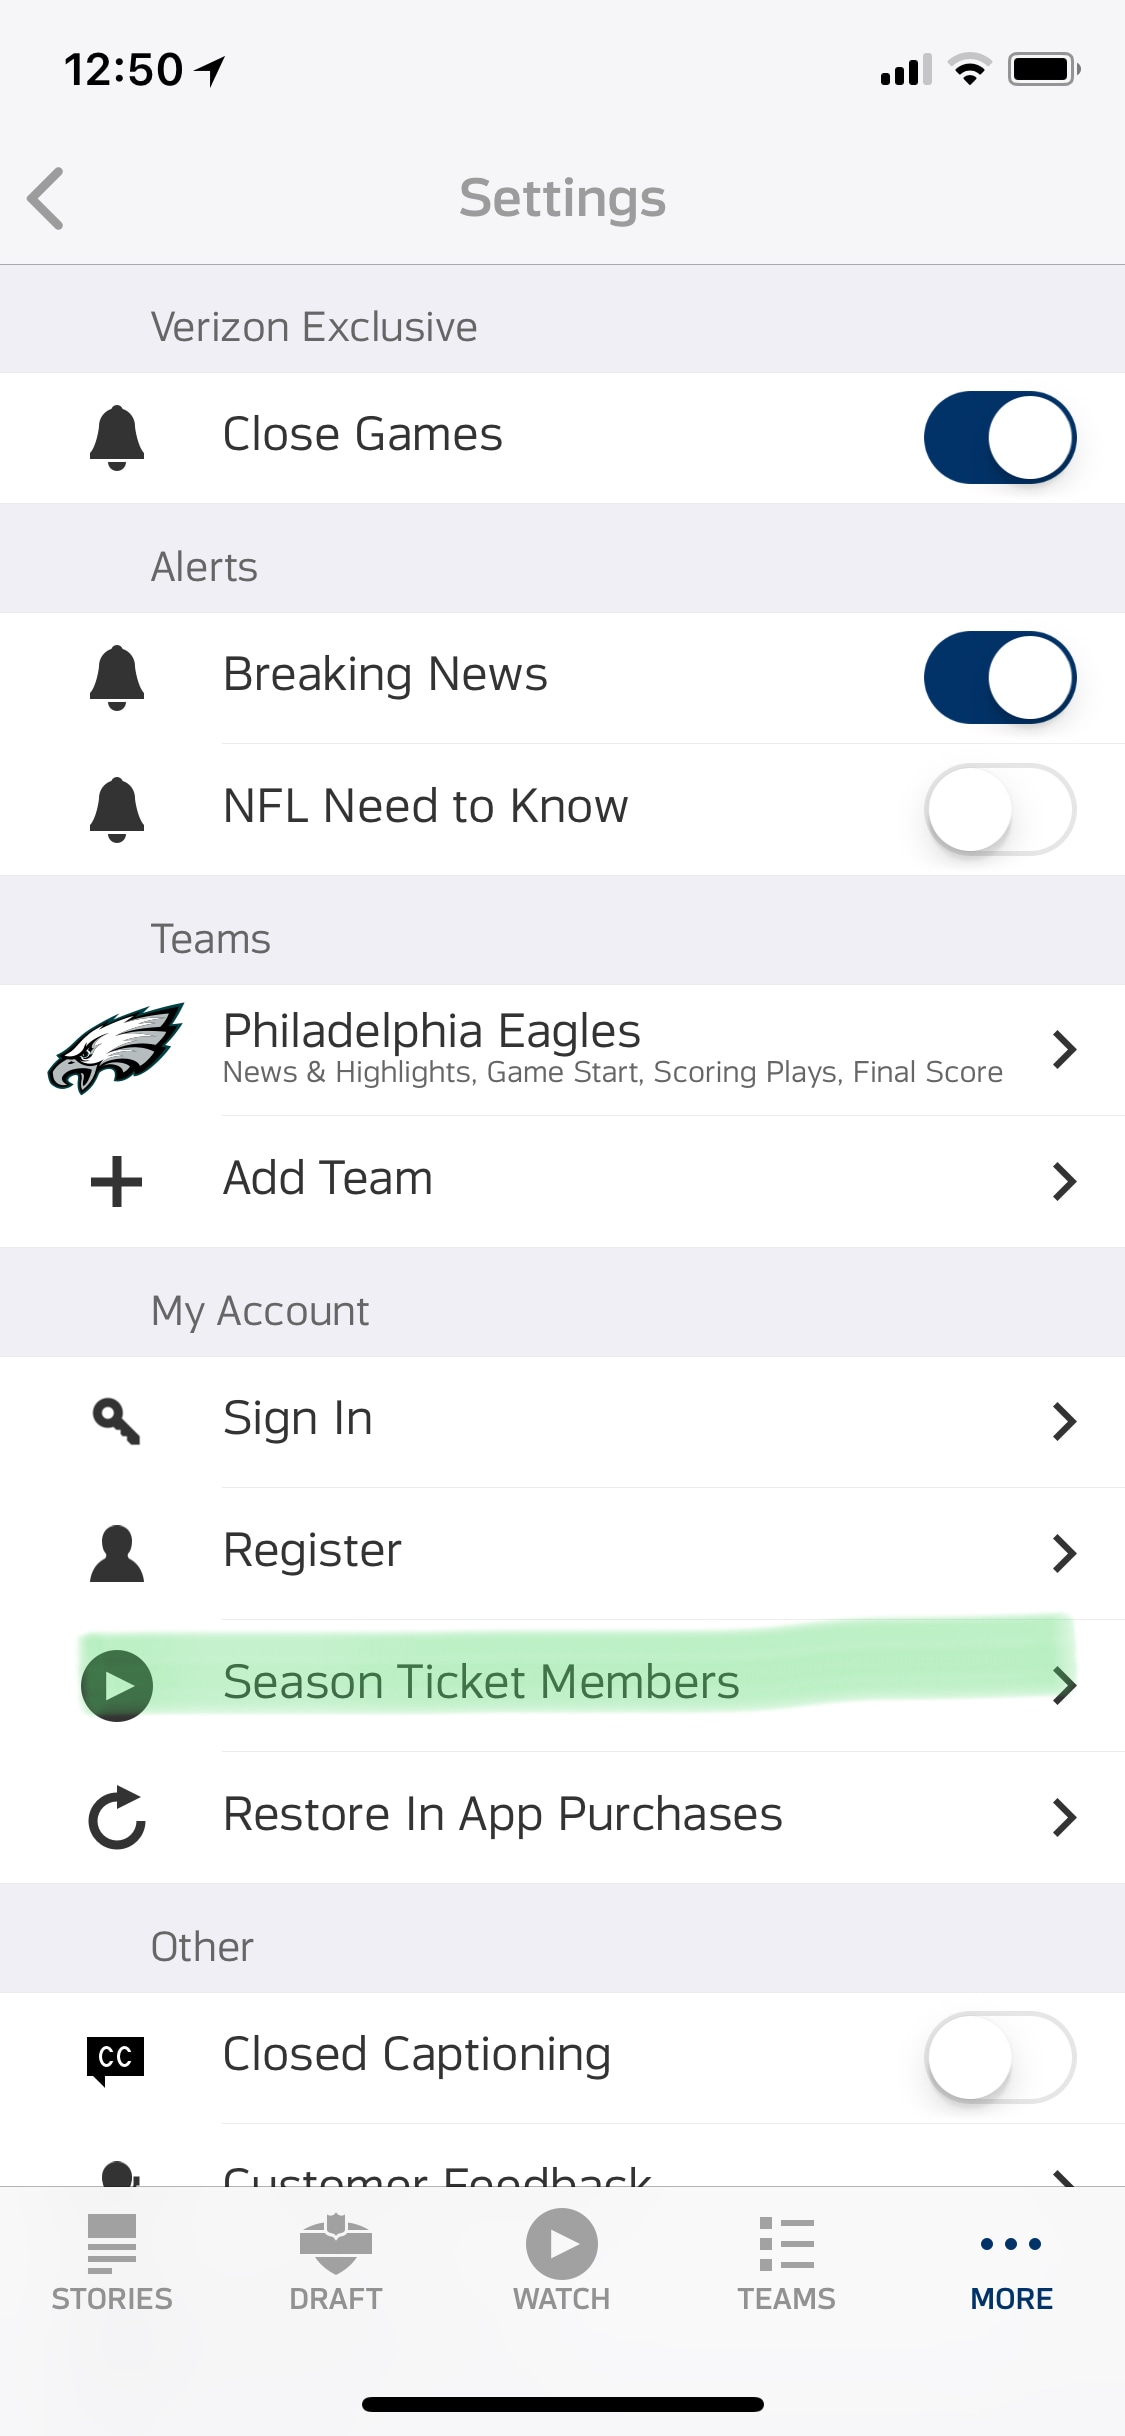 Sign into Season Ticket Members Account